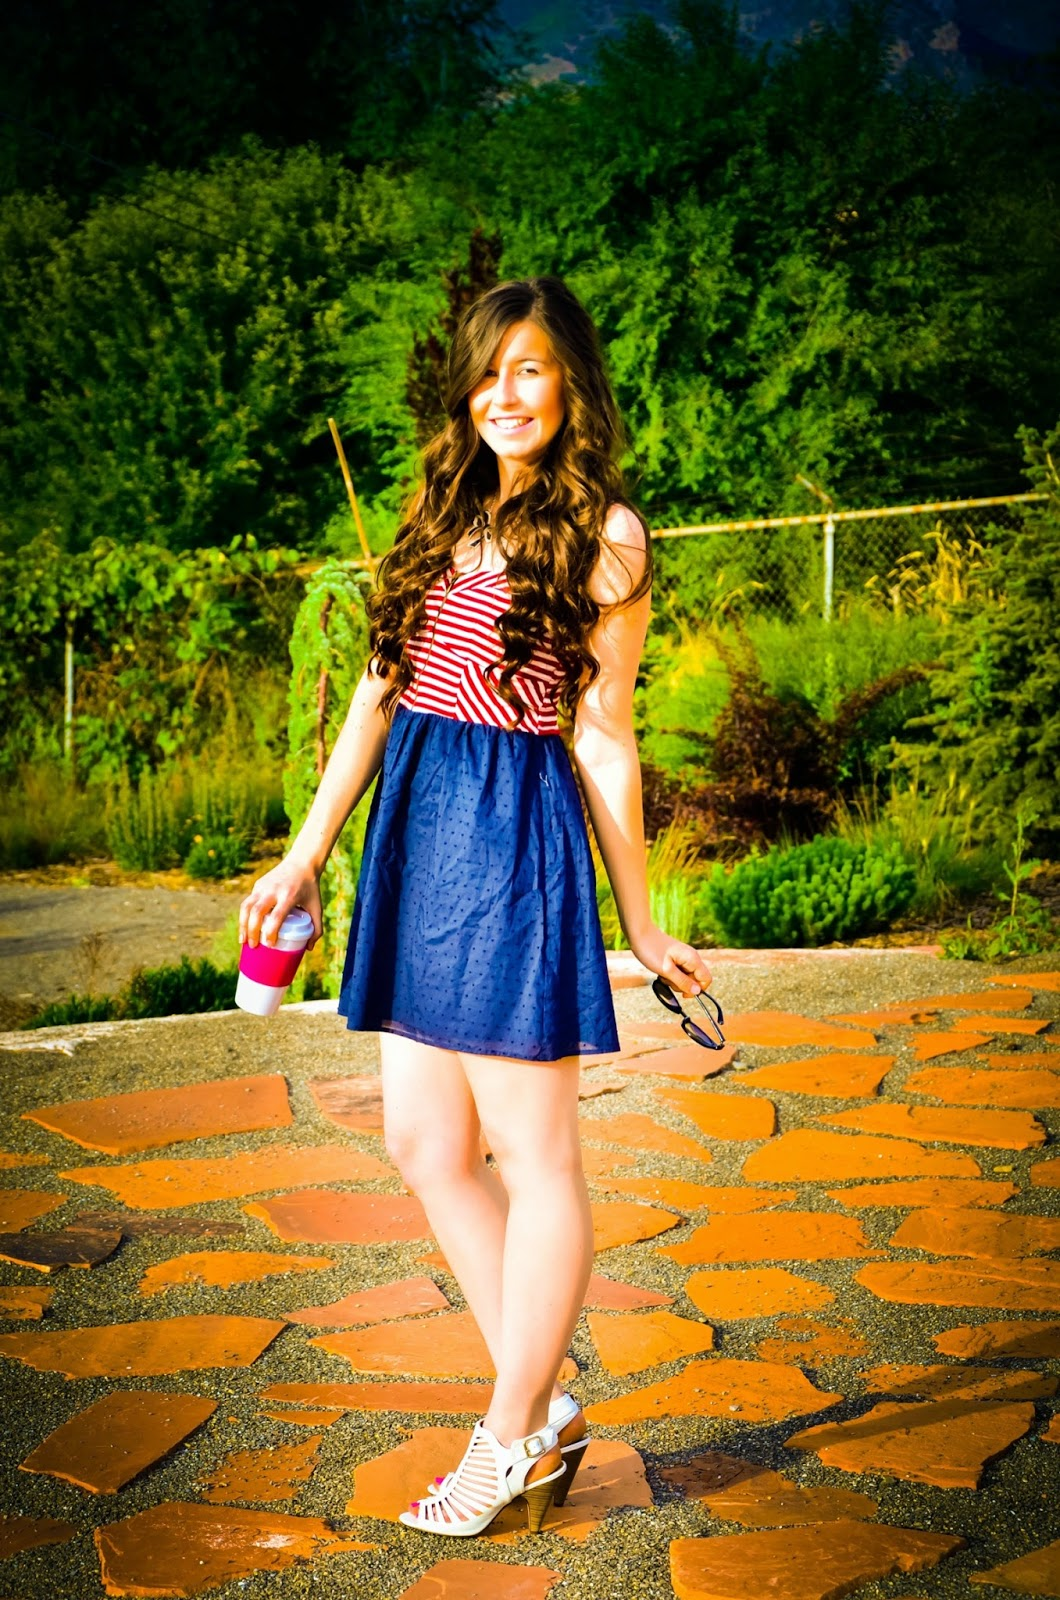 4th of july, july fourth outfits, july 4th. red white and blue, red white and blue outfit, round up, clothing, ootd, outfit, july 4th outfit,